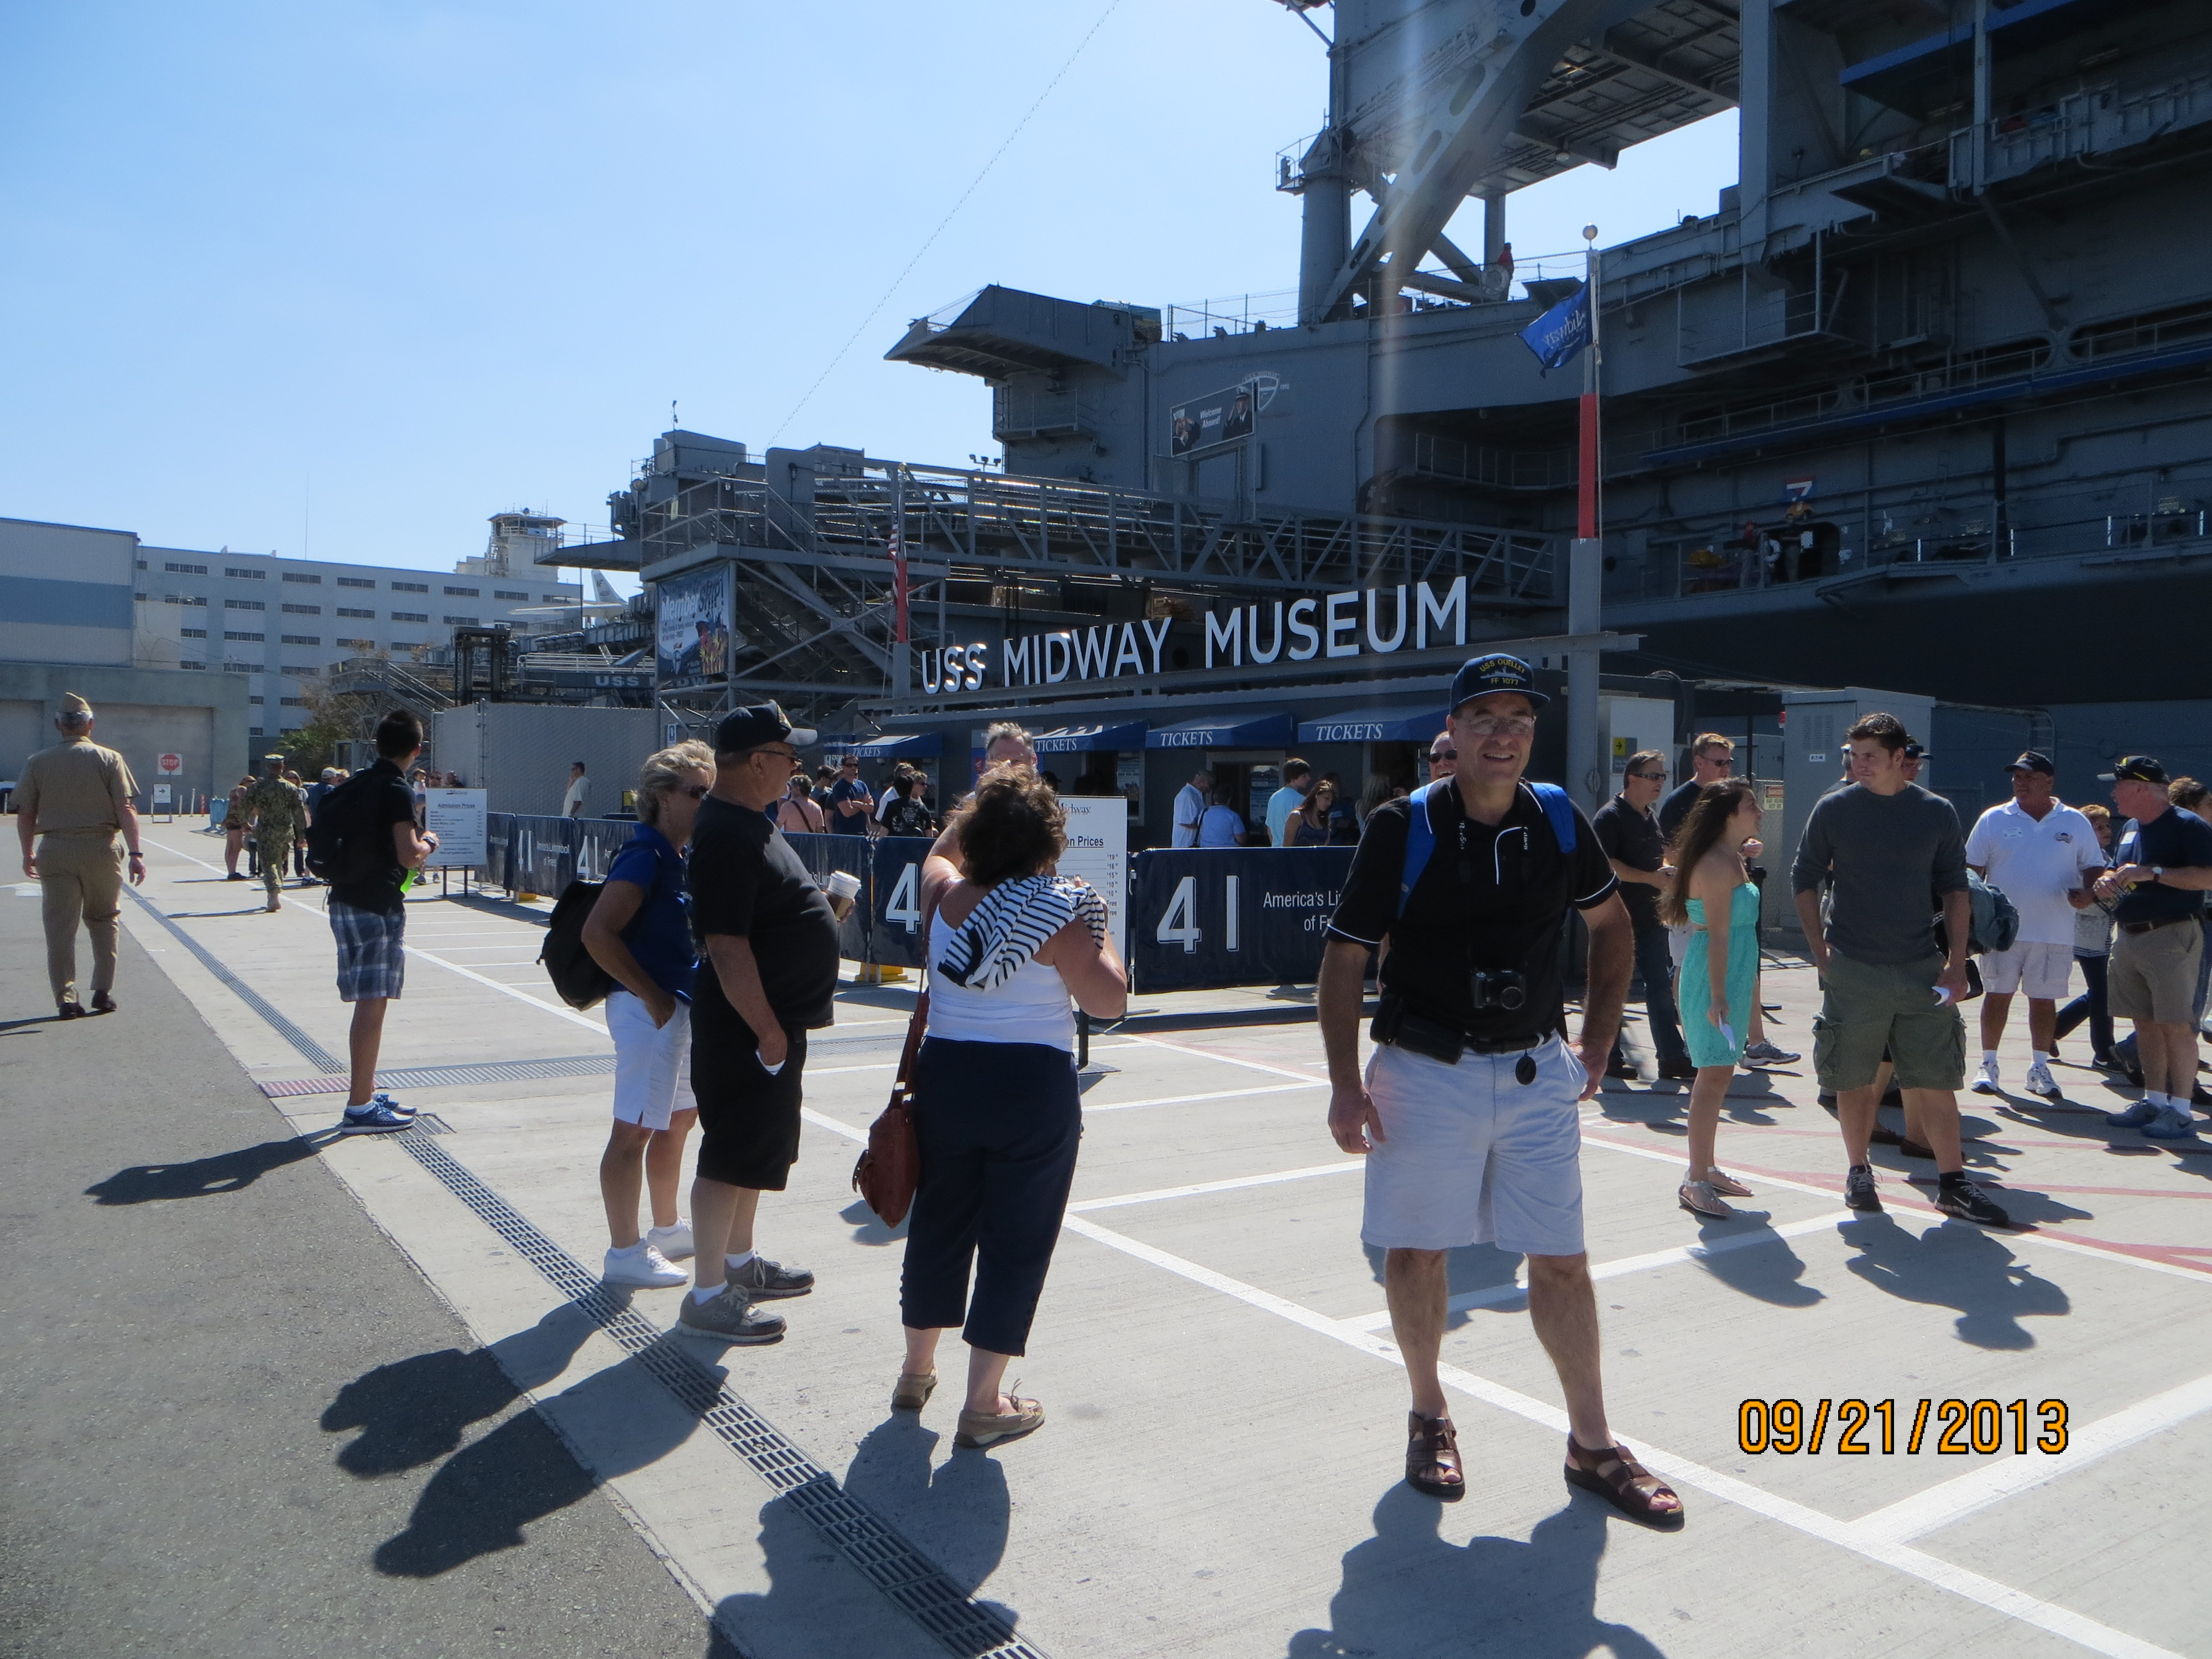 2013-09-21 MIDWAY(Meuwissen2912